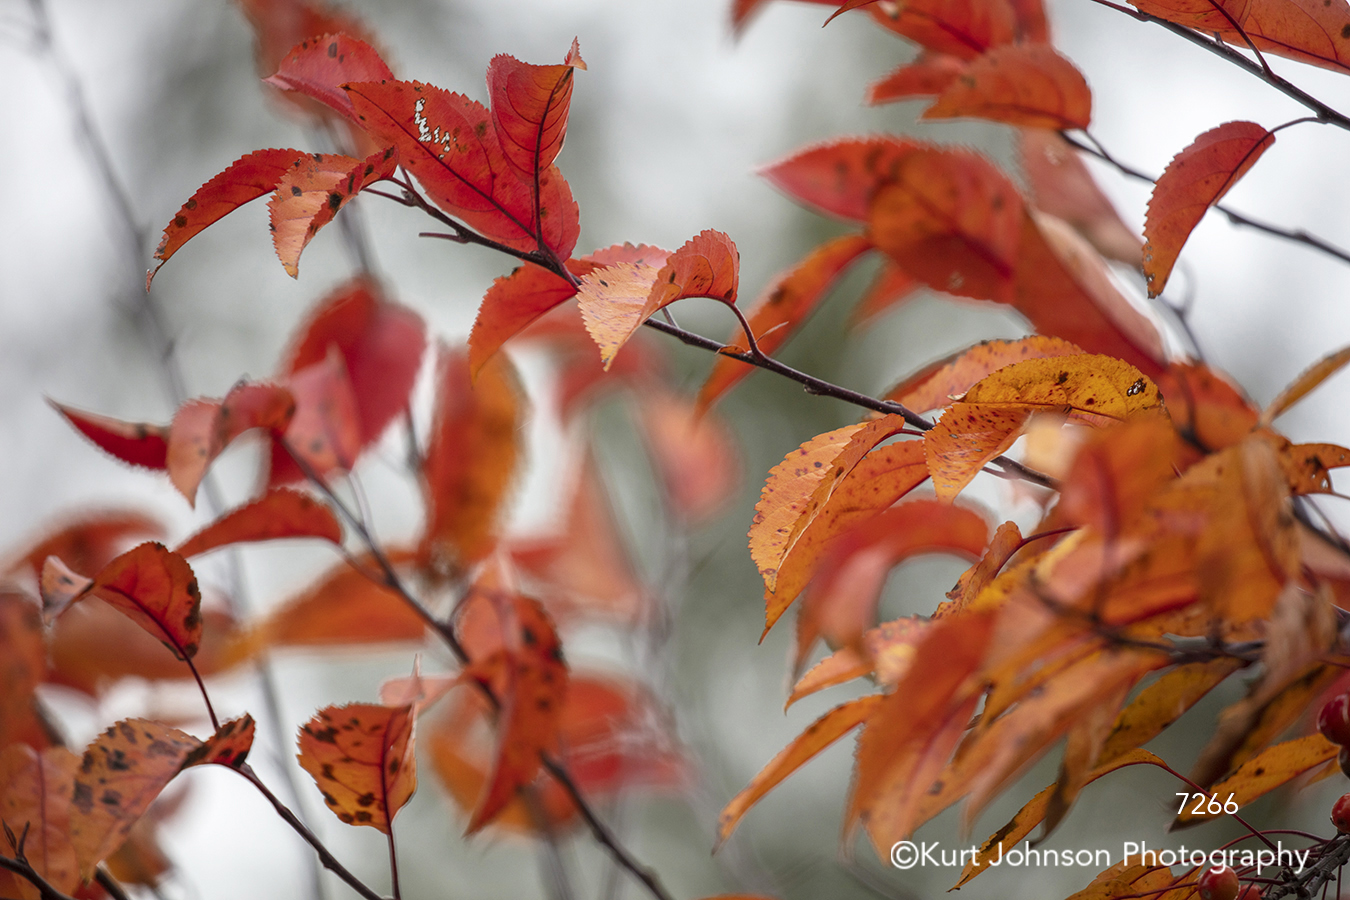 red leaves branch tree branches close up detail autumn fall color